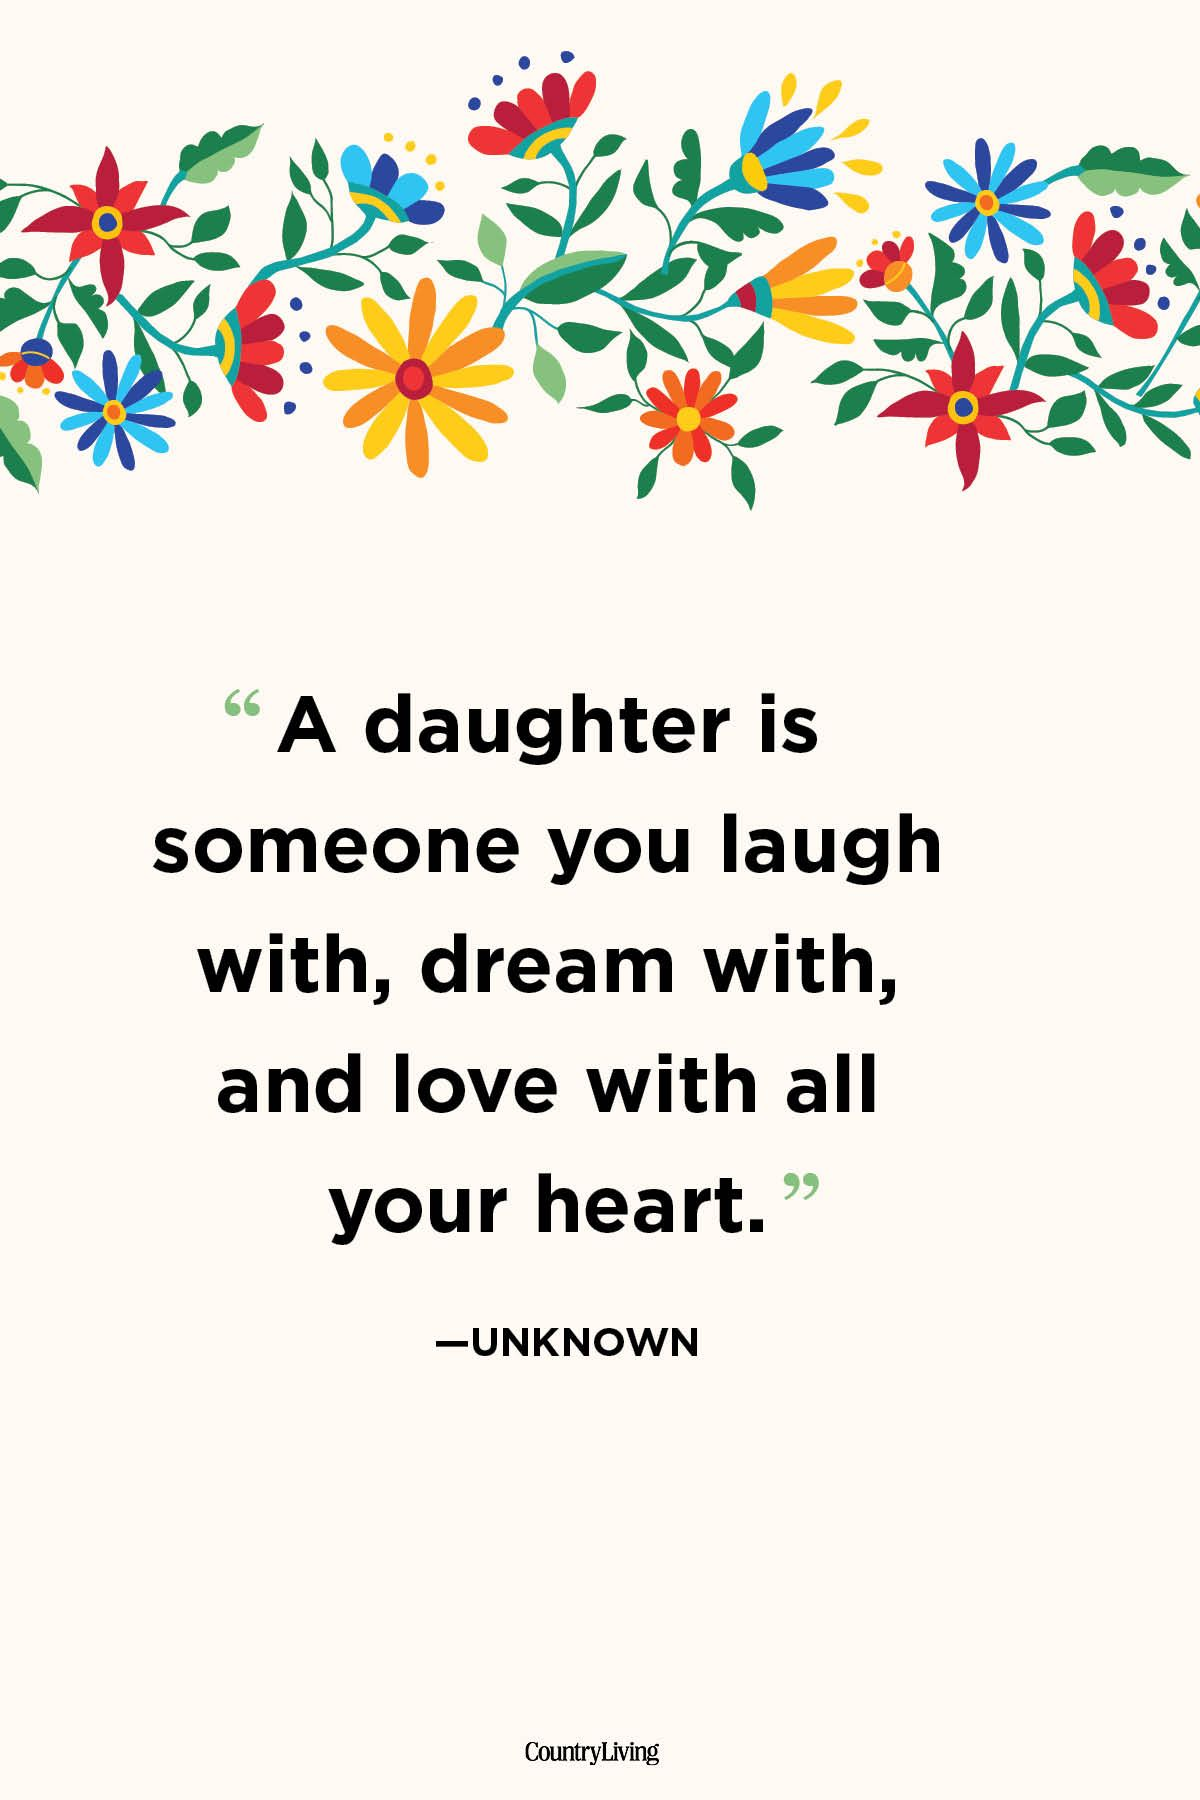 Mother and daughter bonding quotes-1366